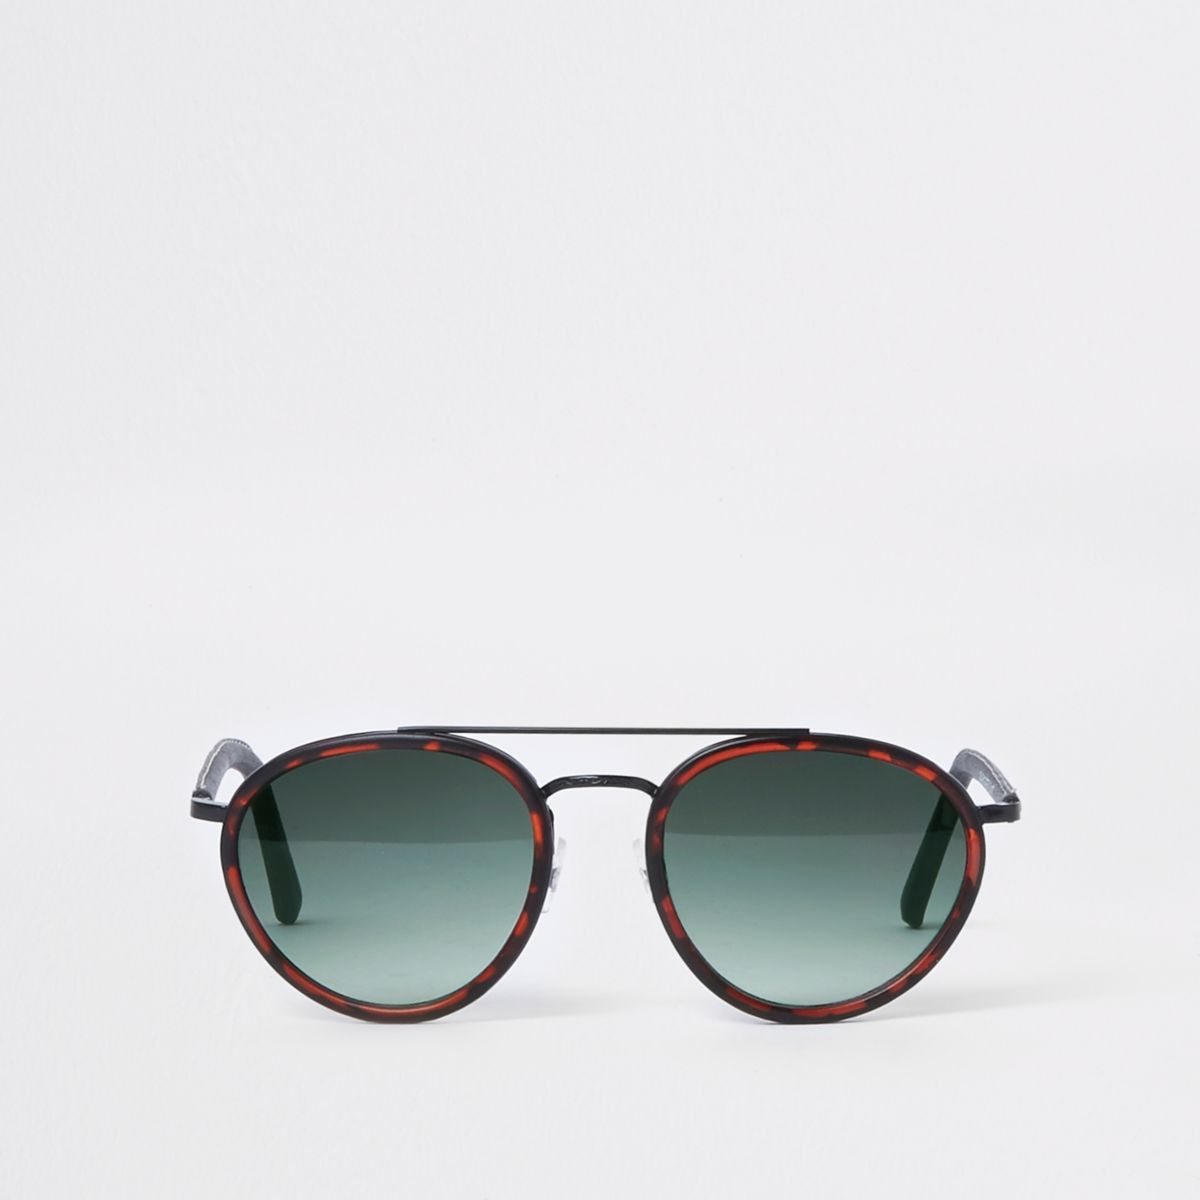 Brown tortoiseshell aviator sunglasses